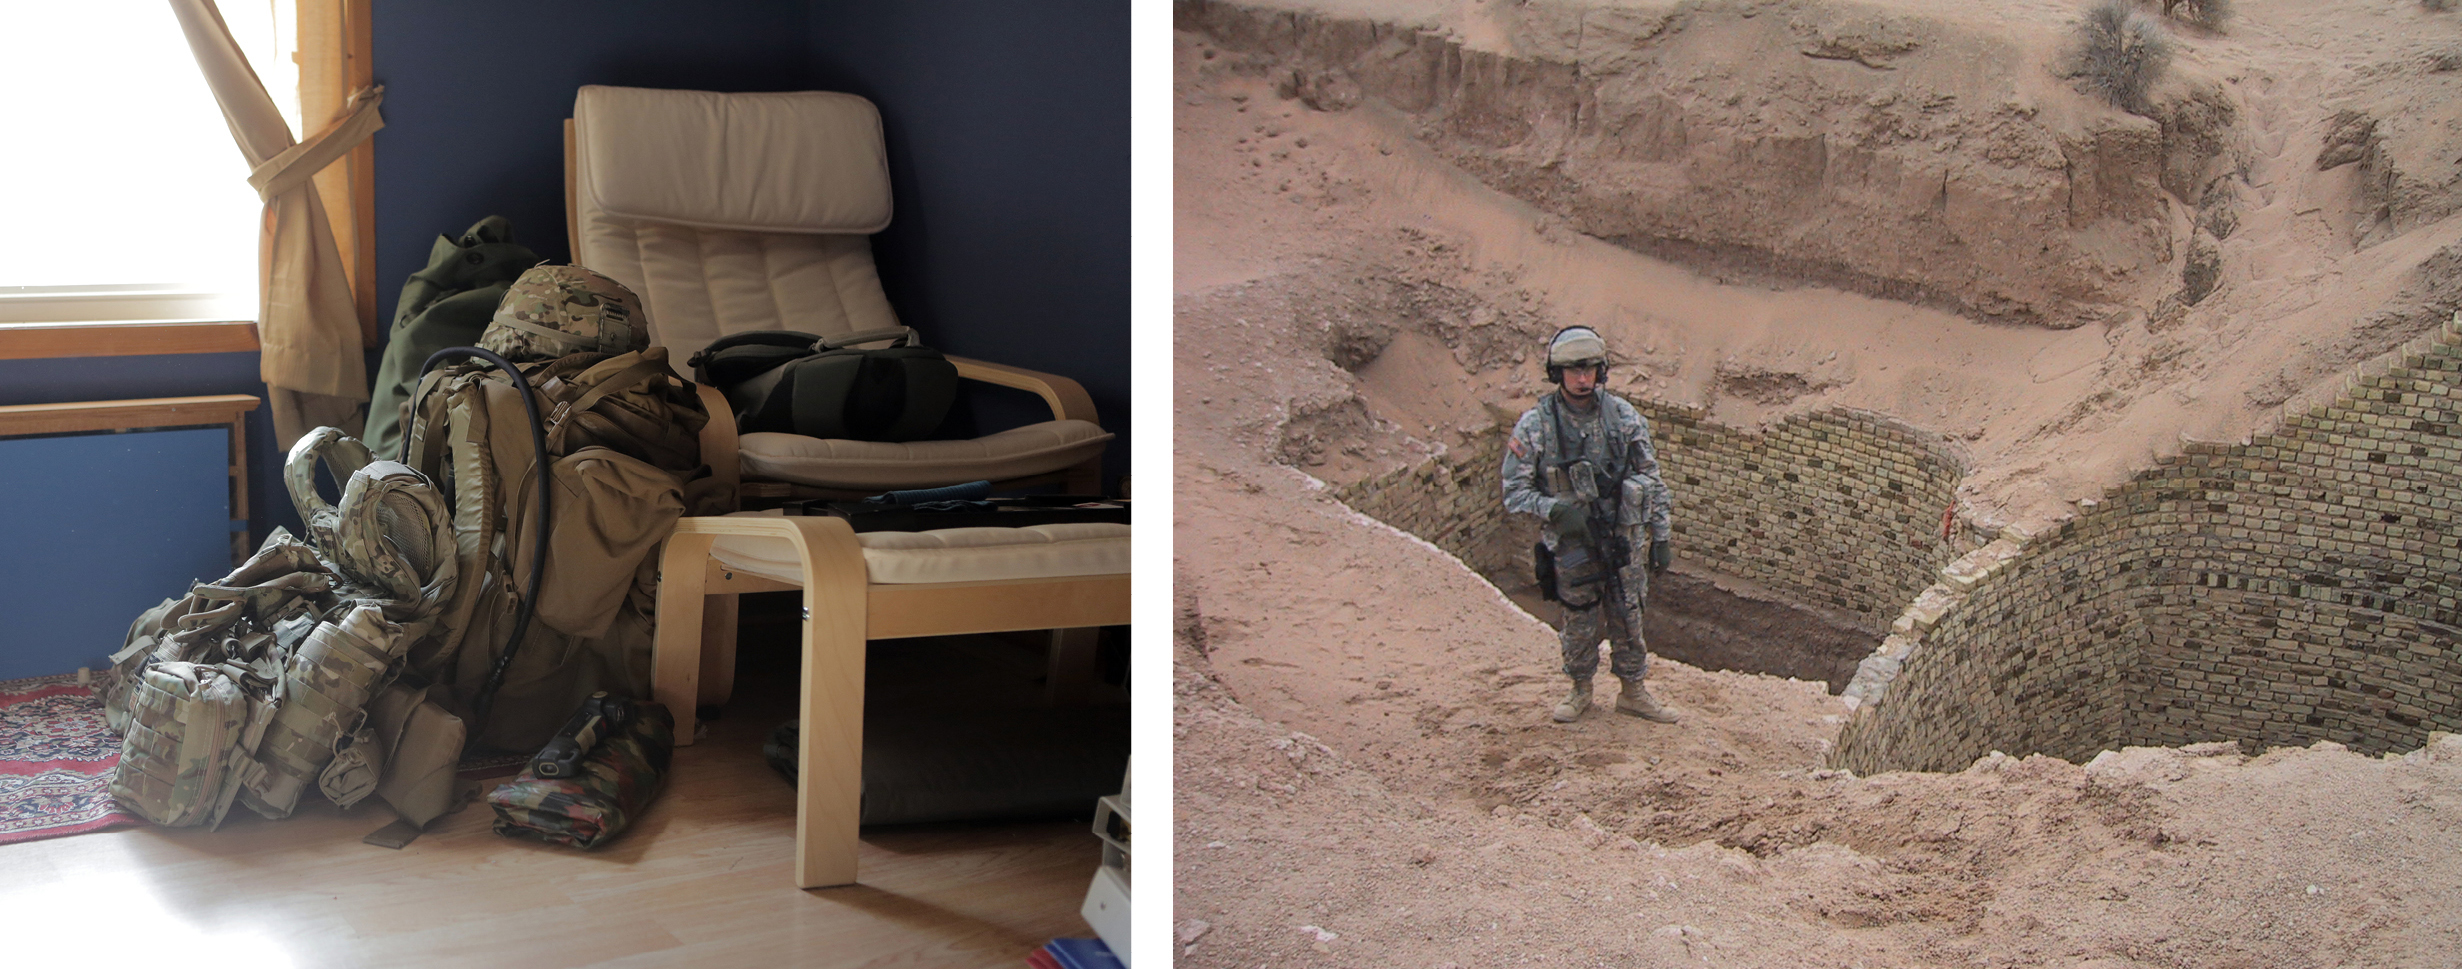 Guyse's pack and personal protective equipment in his home office. Guyse in Iraq.